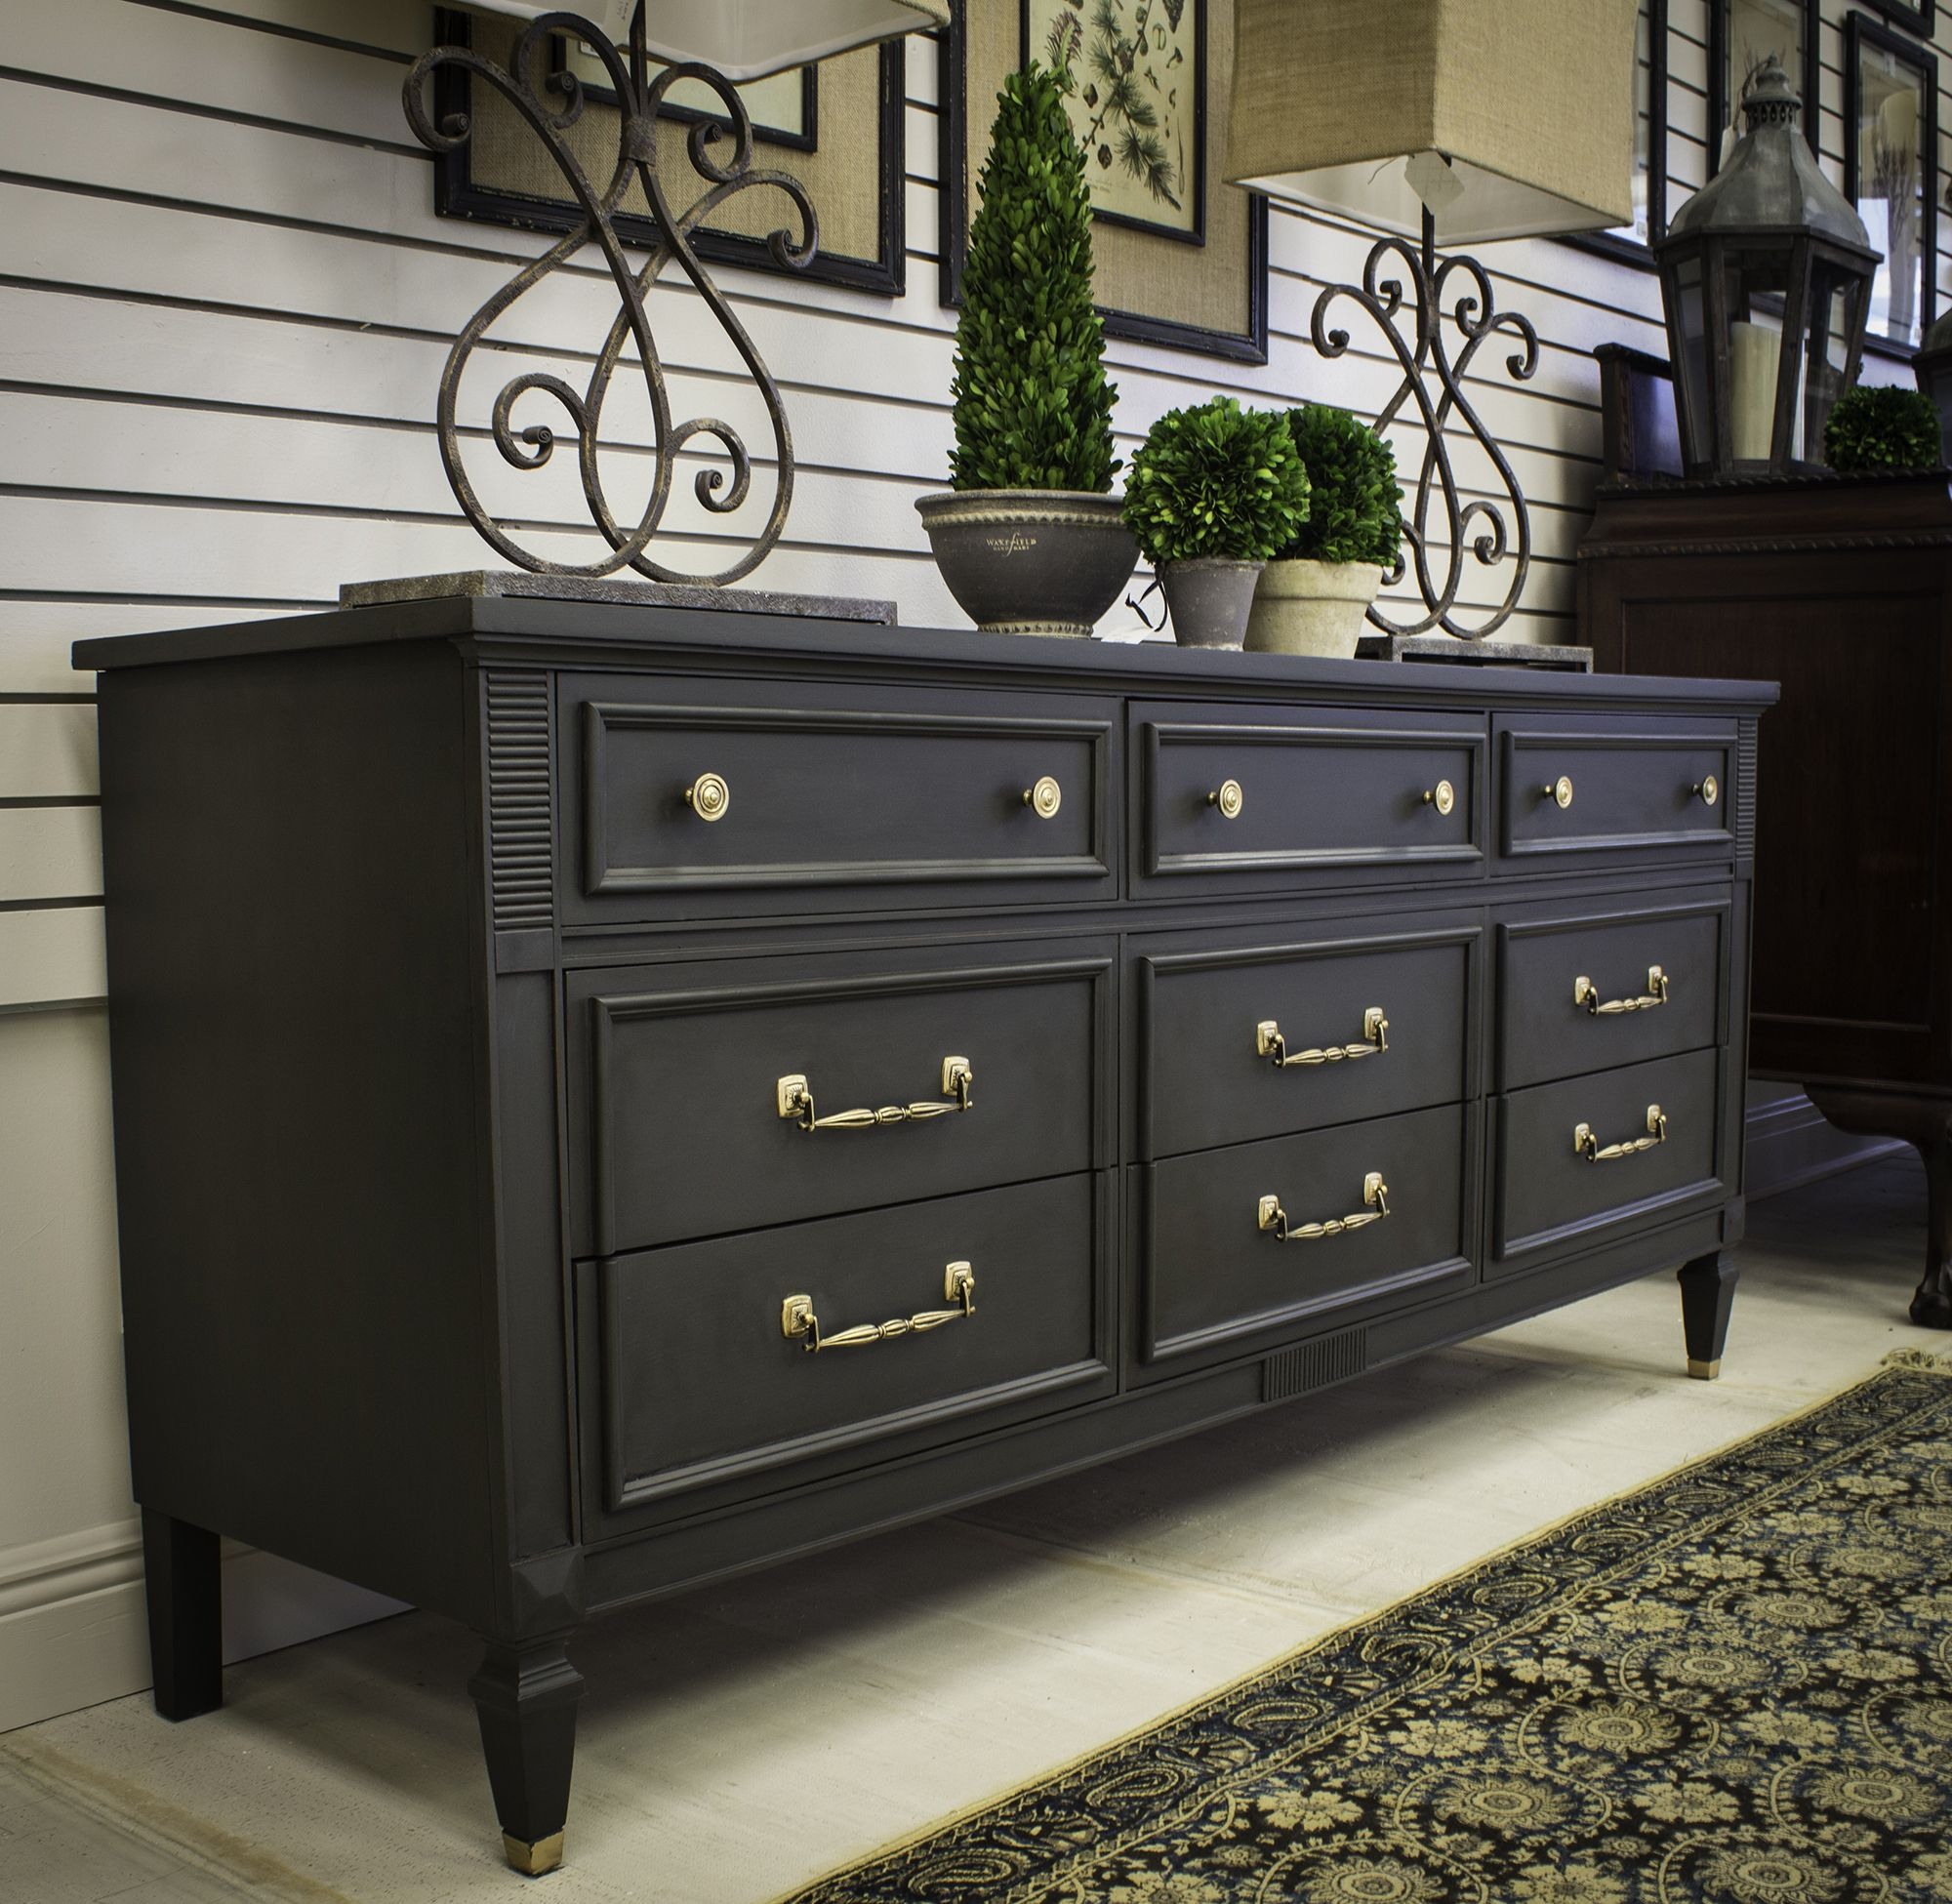 Pin Portilla Home & Garden Graphite Regency Dresser